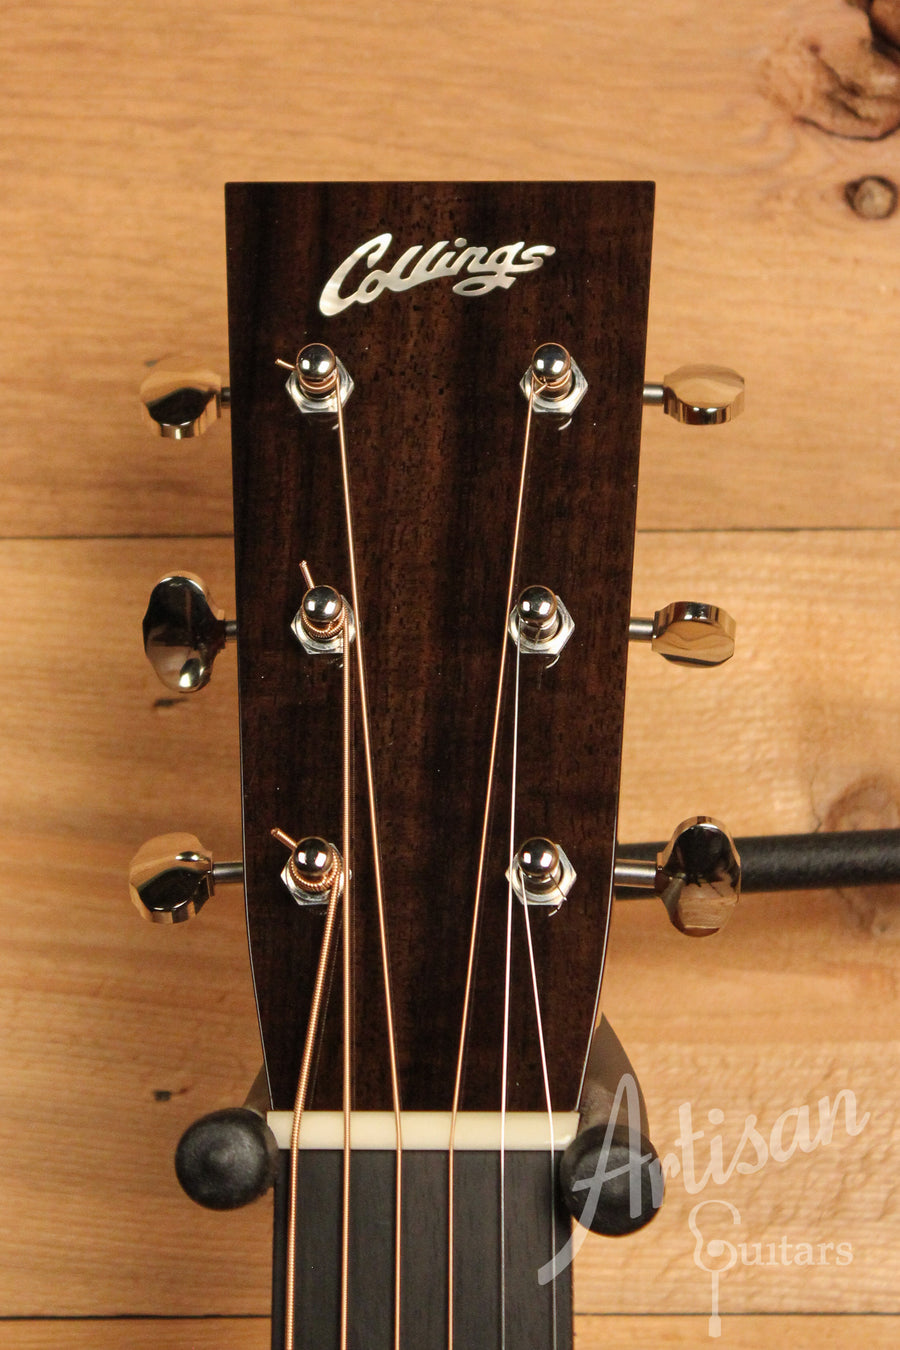 Collings Custom OM2 SR Sitka Spruce and Sacha Rosewood Pre-Owned 2014 ID-11466 - Artisan Guitars